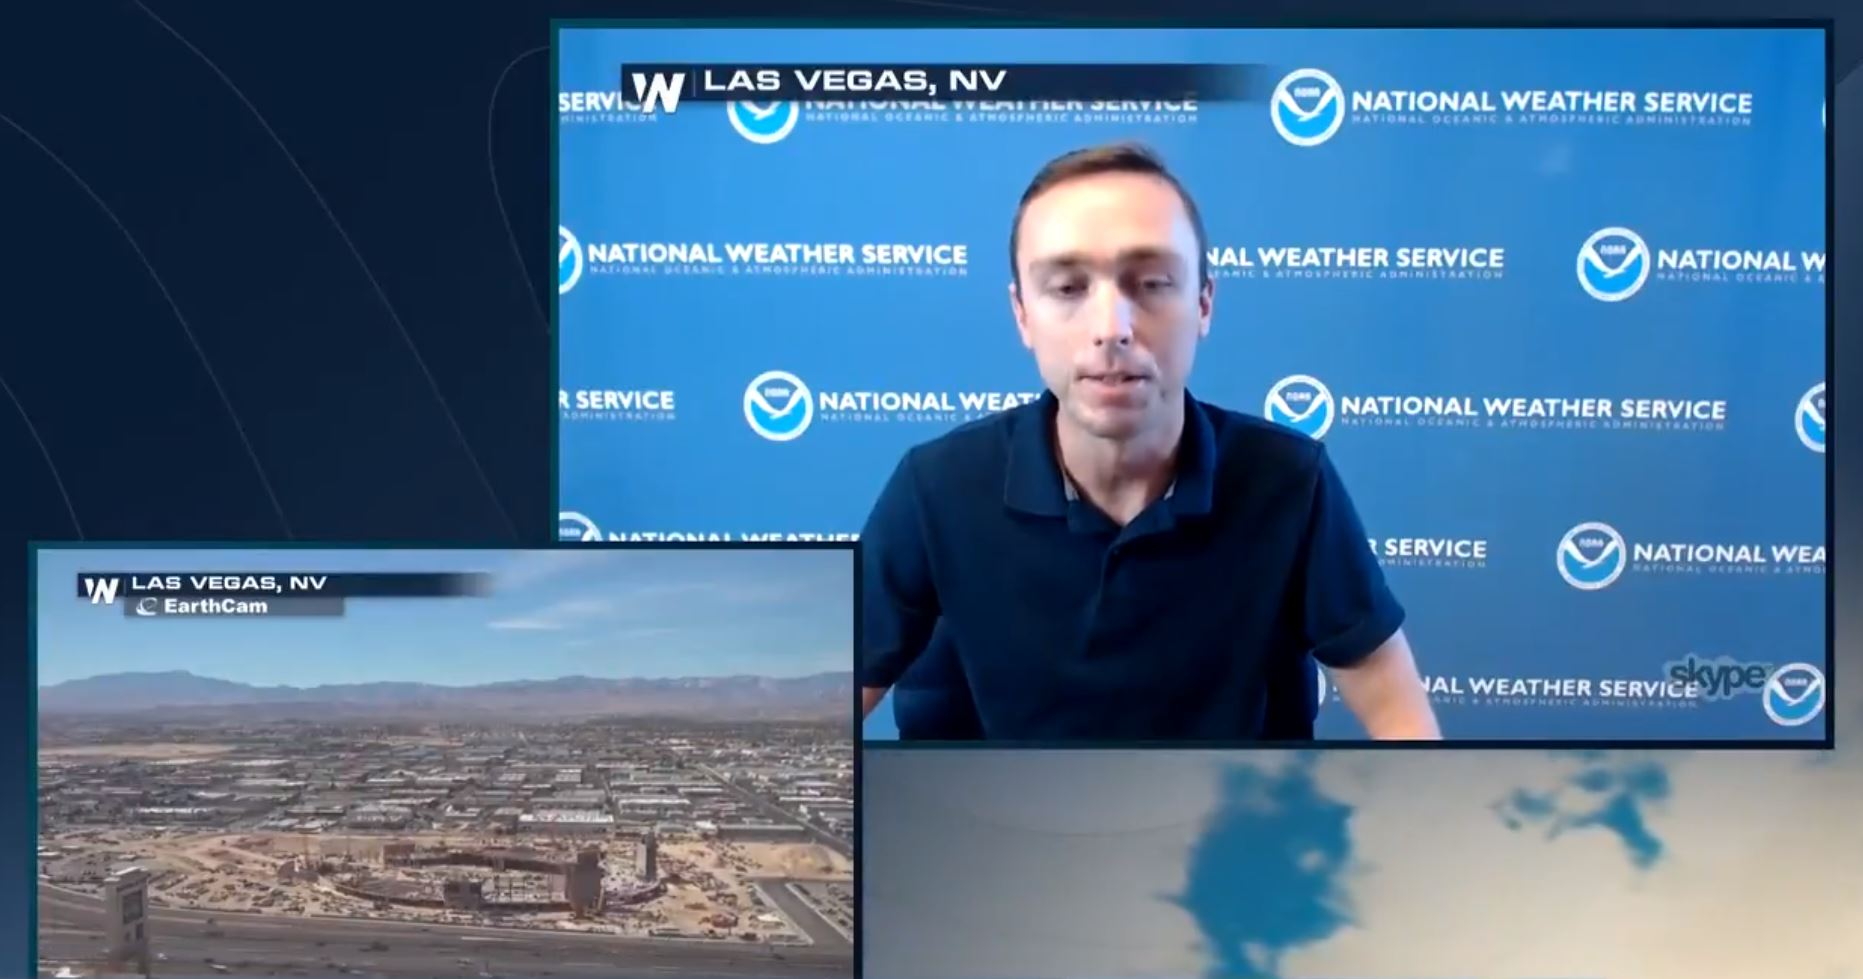 NWS Las Vegas Gives Local Advice Before Rosa